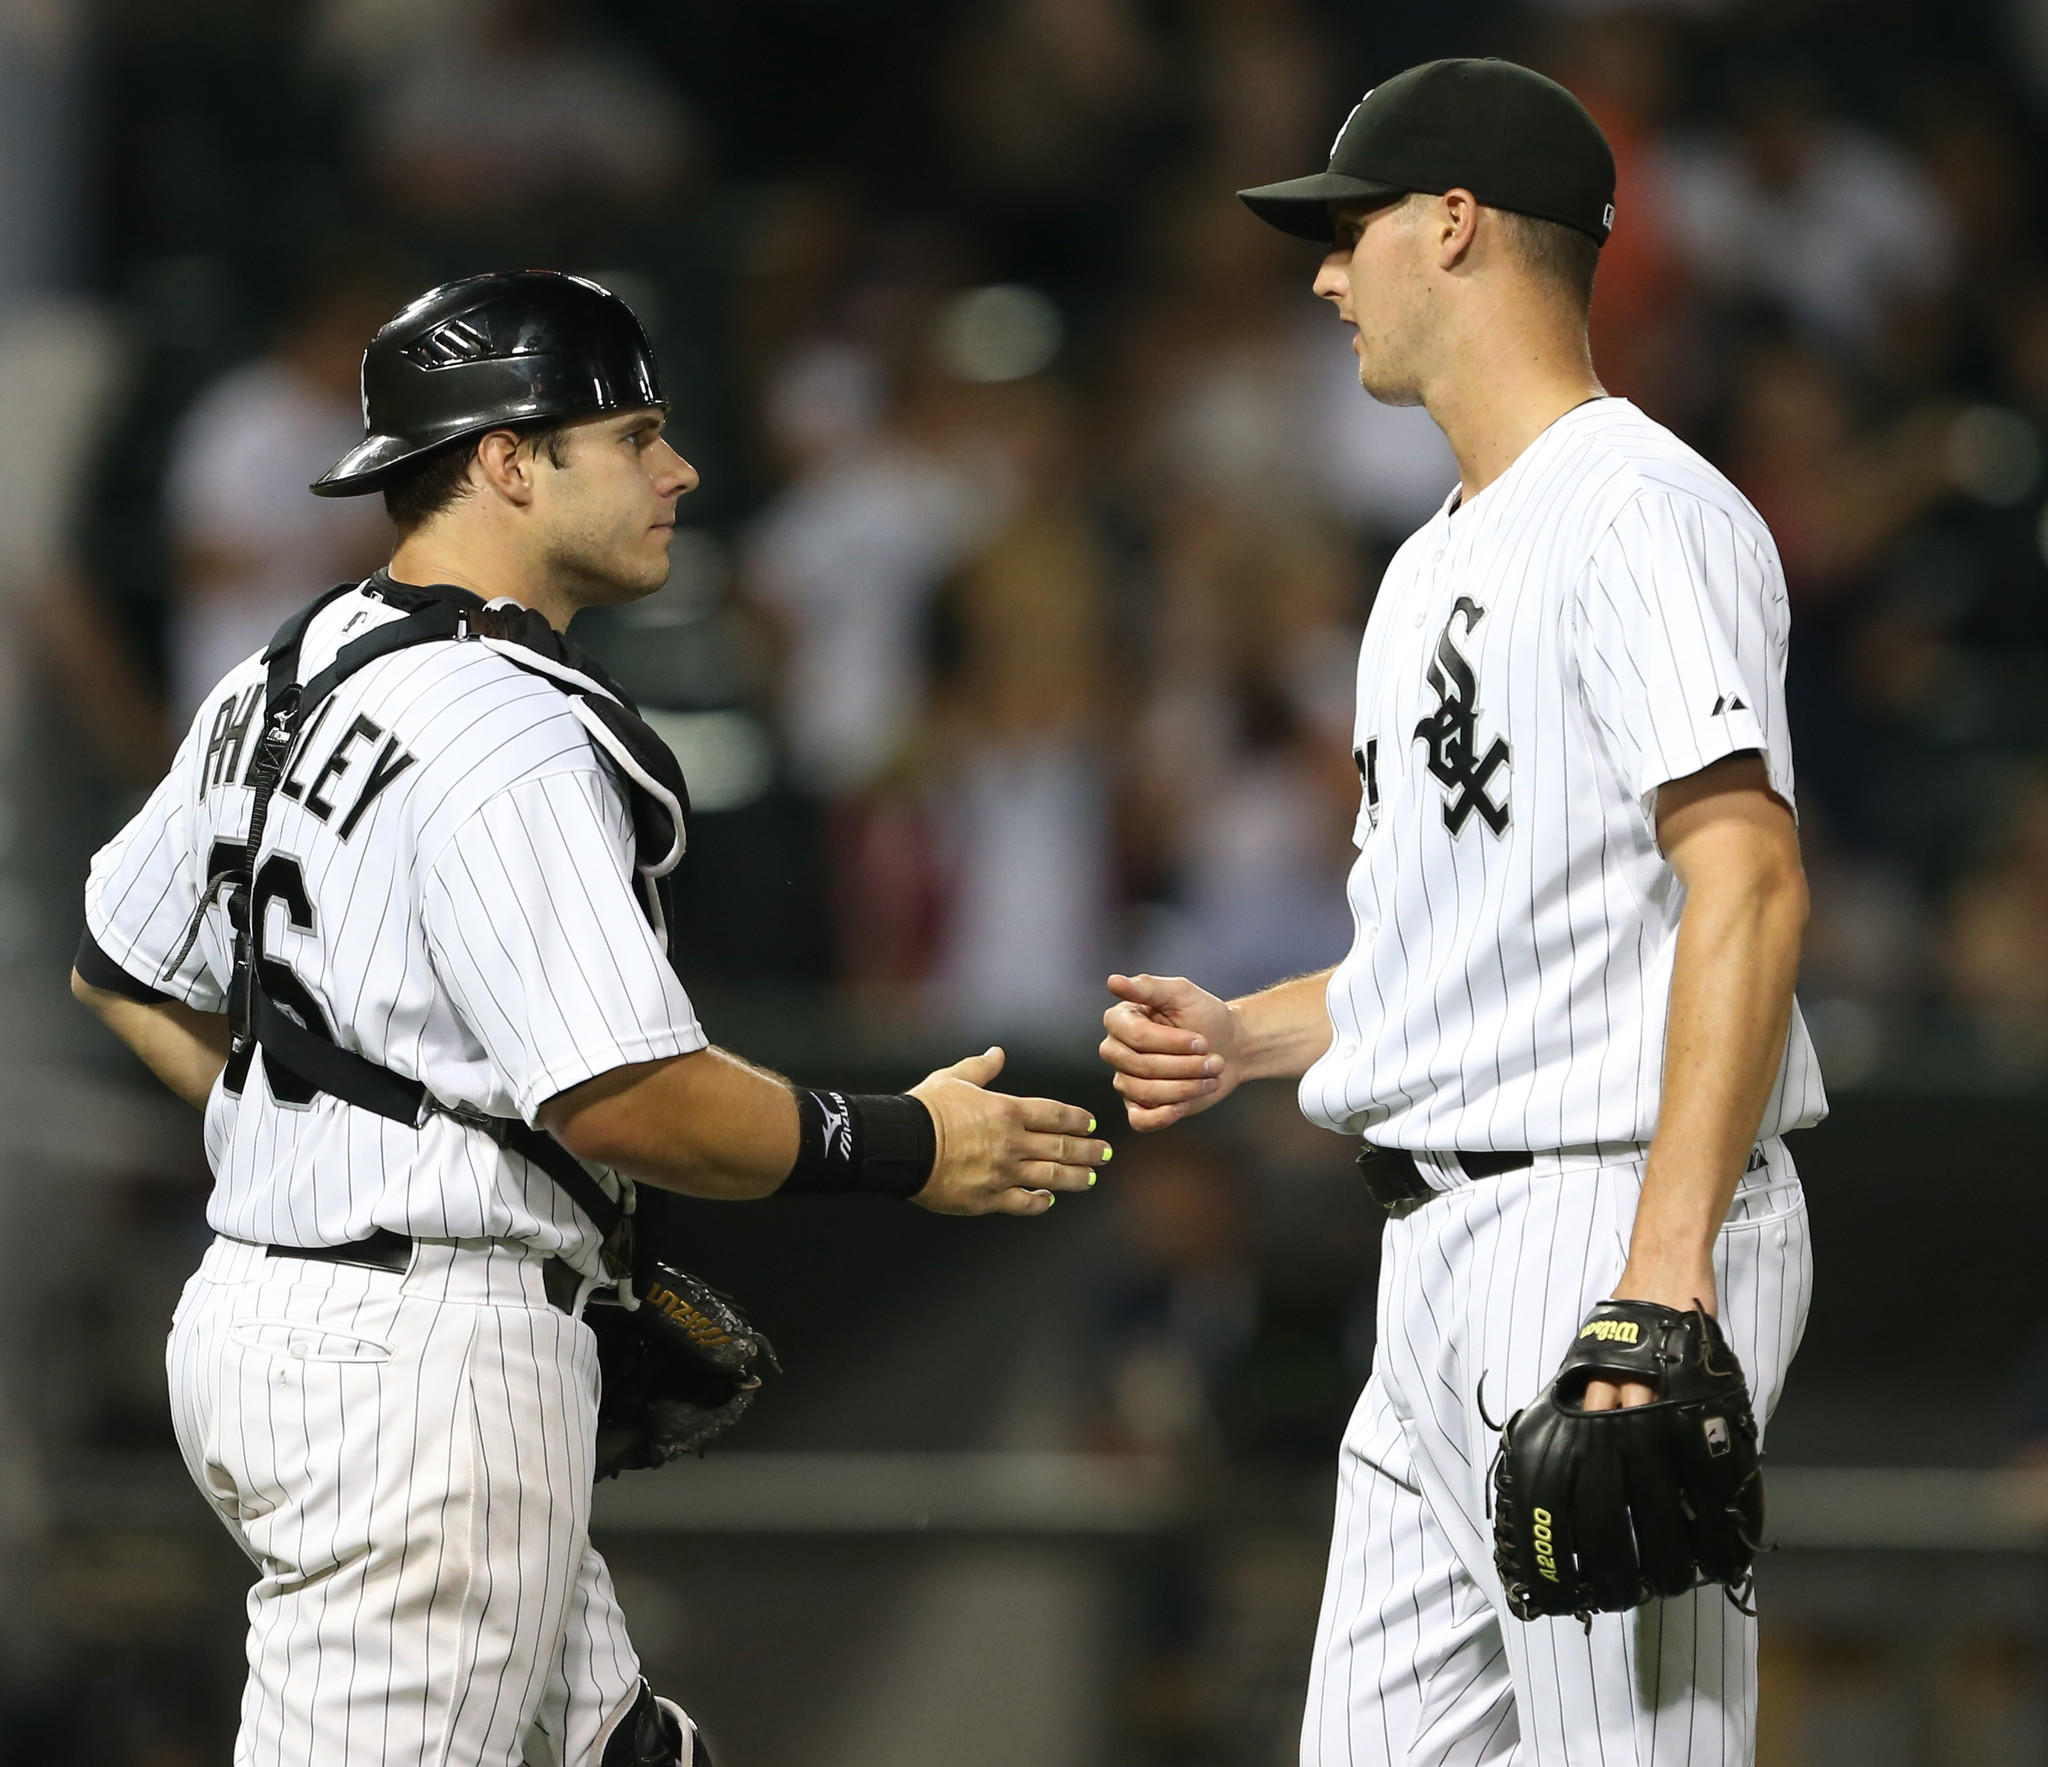 Chicago White Sox catcher Josh Phegley (36), with Chicago White Sox relief pitcher Nate Jones (65), at the end of their team's win over the Detroit Tigers at U.S. Cellular Field, in Chicago, on Monday Sept., 9, 2013.